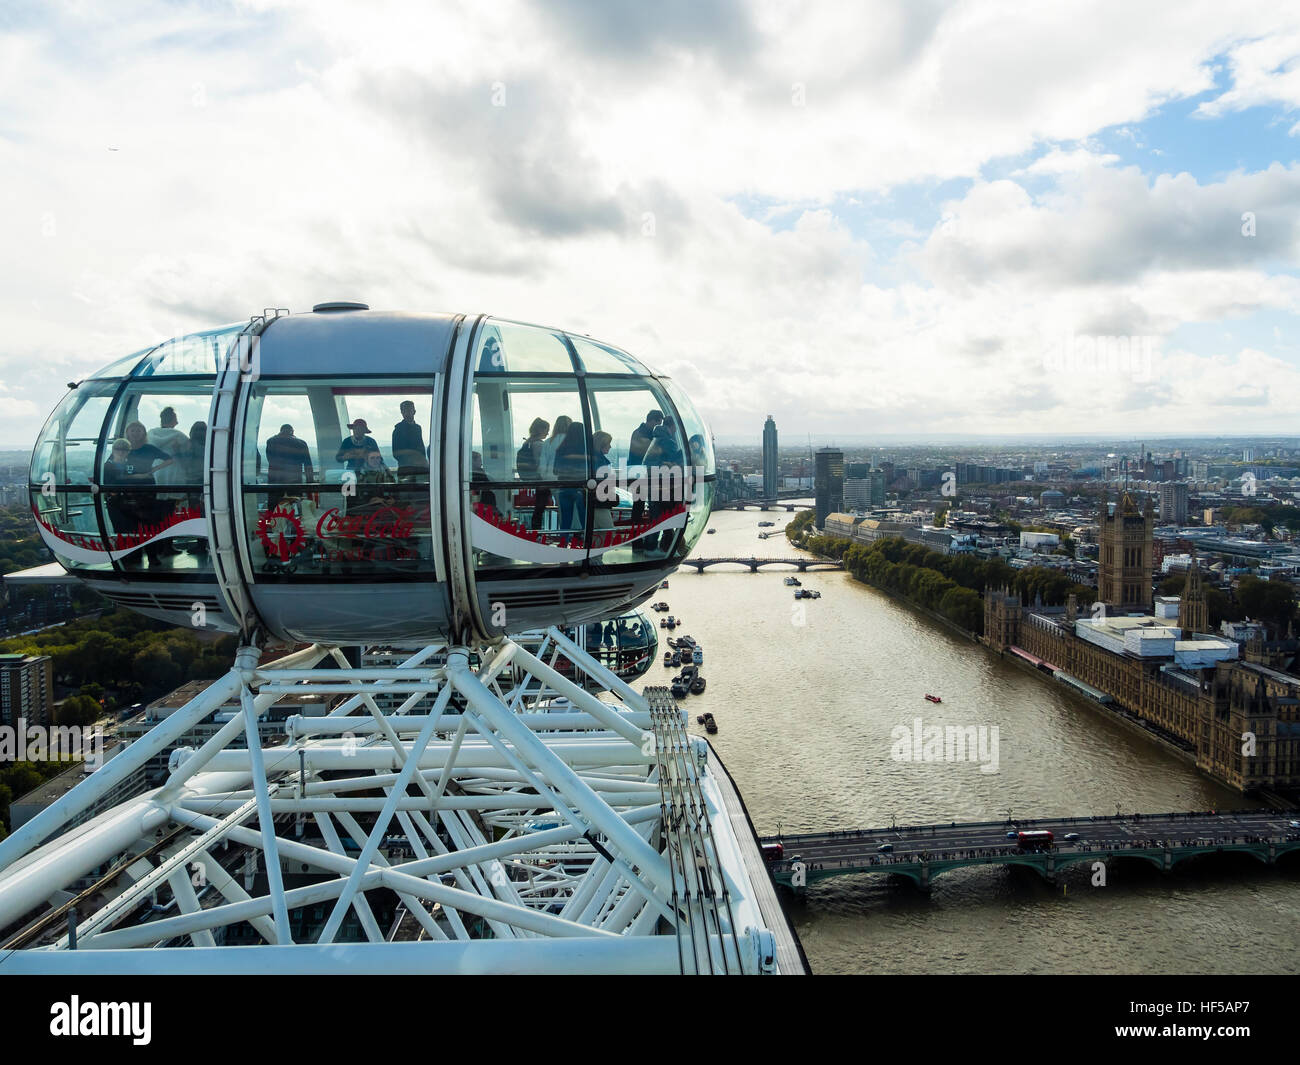 Capsules, London Eye, London, England, United Kingdom - Stock Image